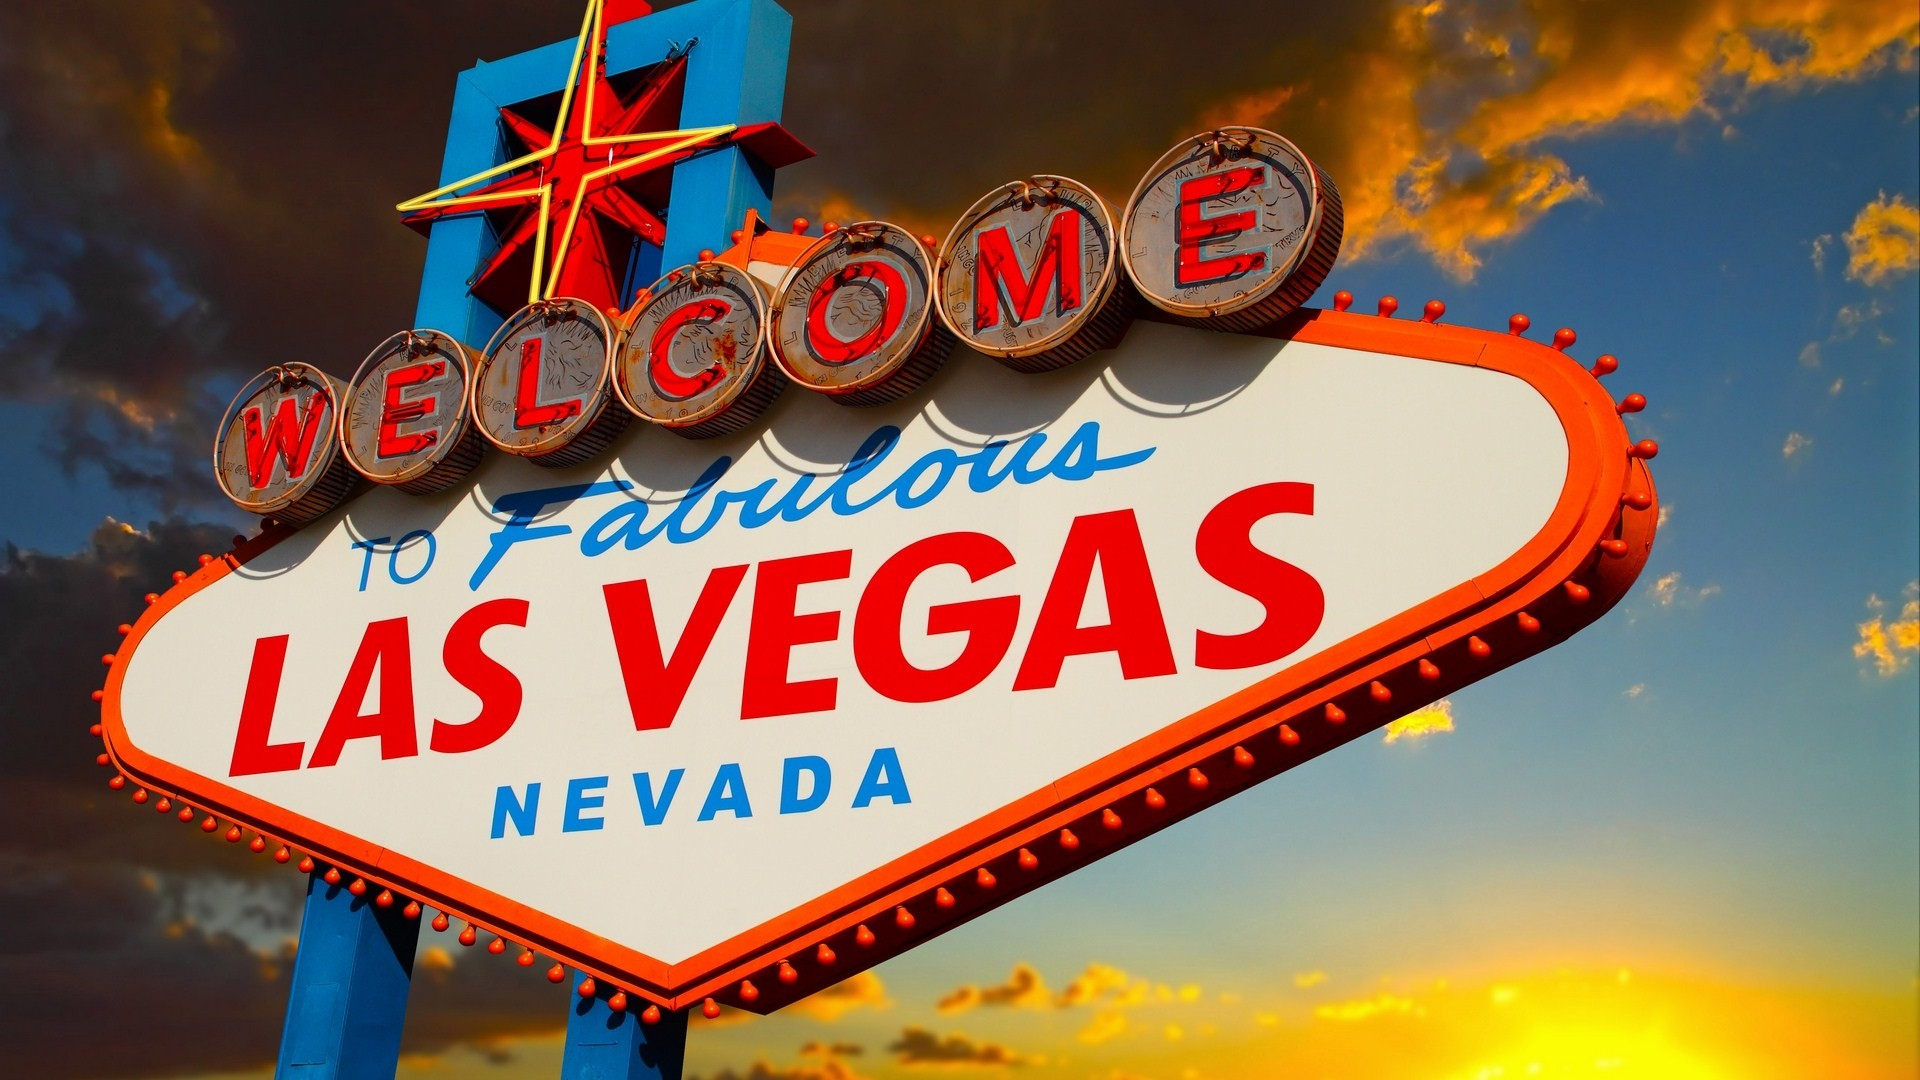 1920x1080 Welcome to Las Vegas wallpapers (59 Wallpapers)